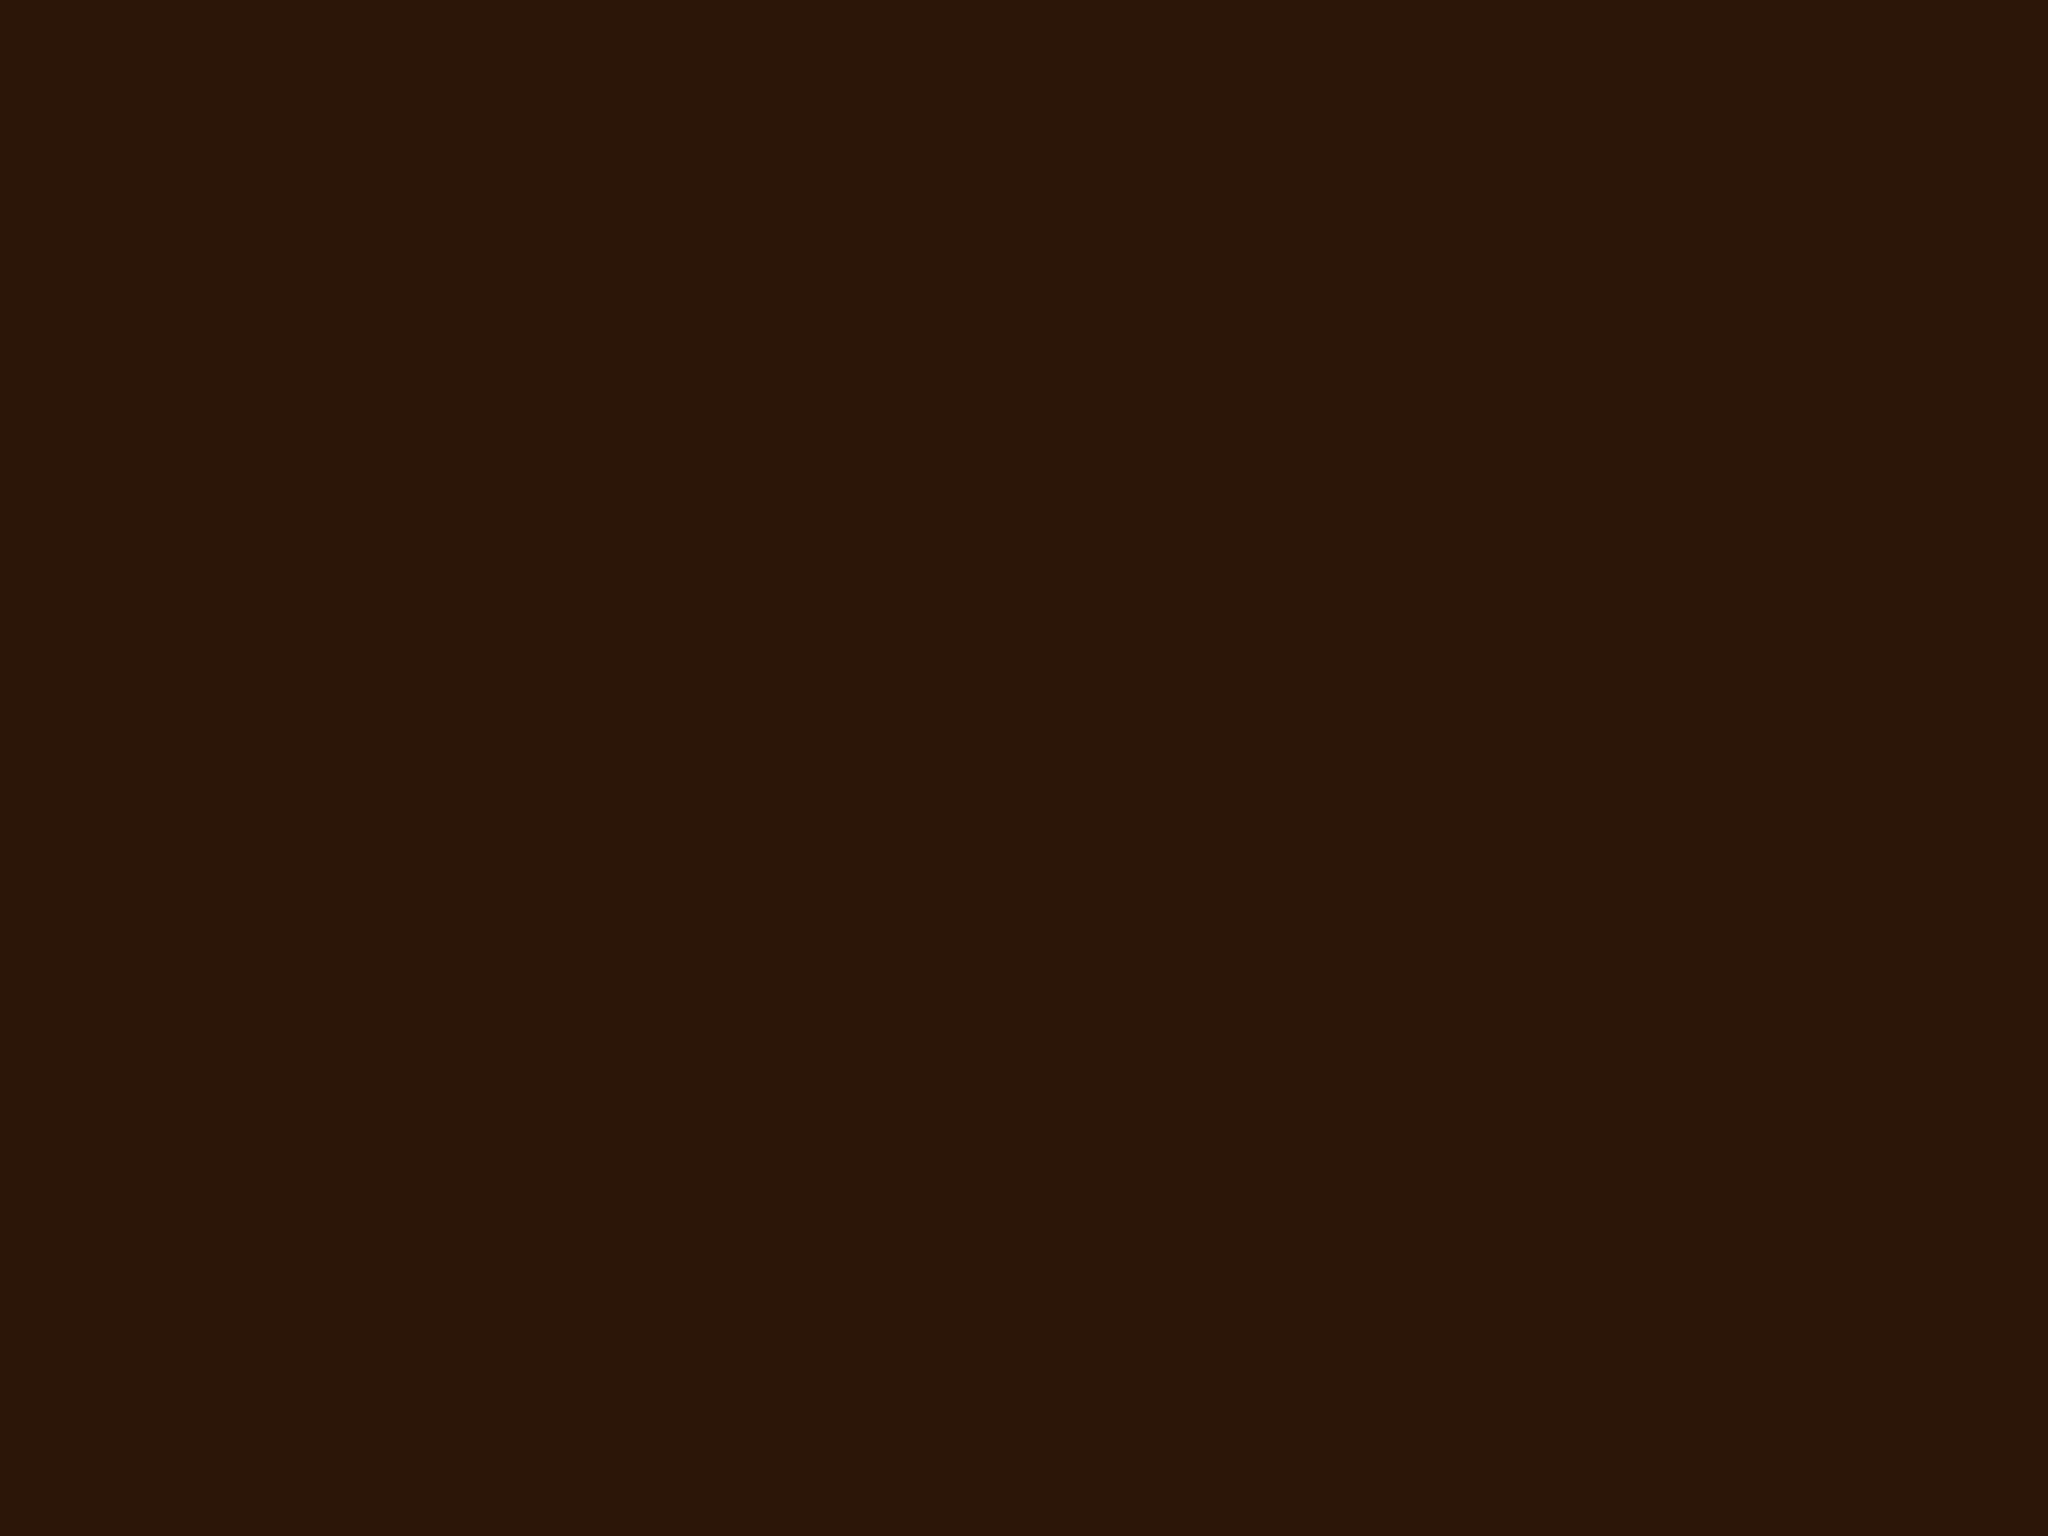 2048x1536 Zinnwaldite Brown Solid Color Background